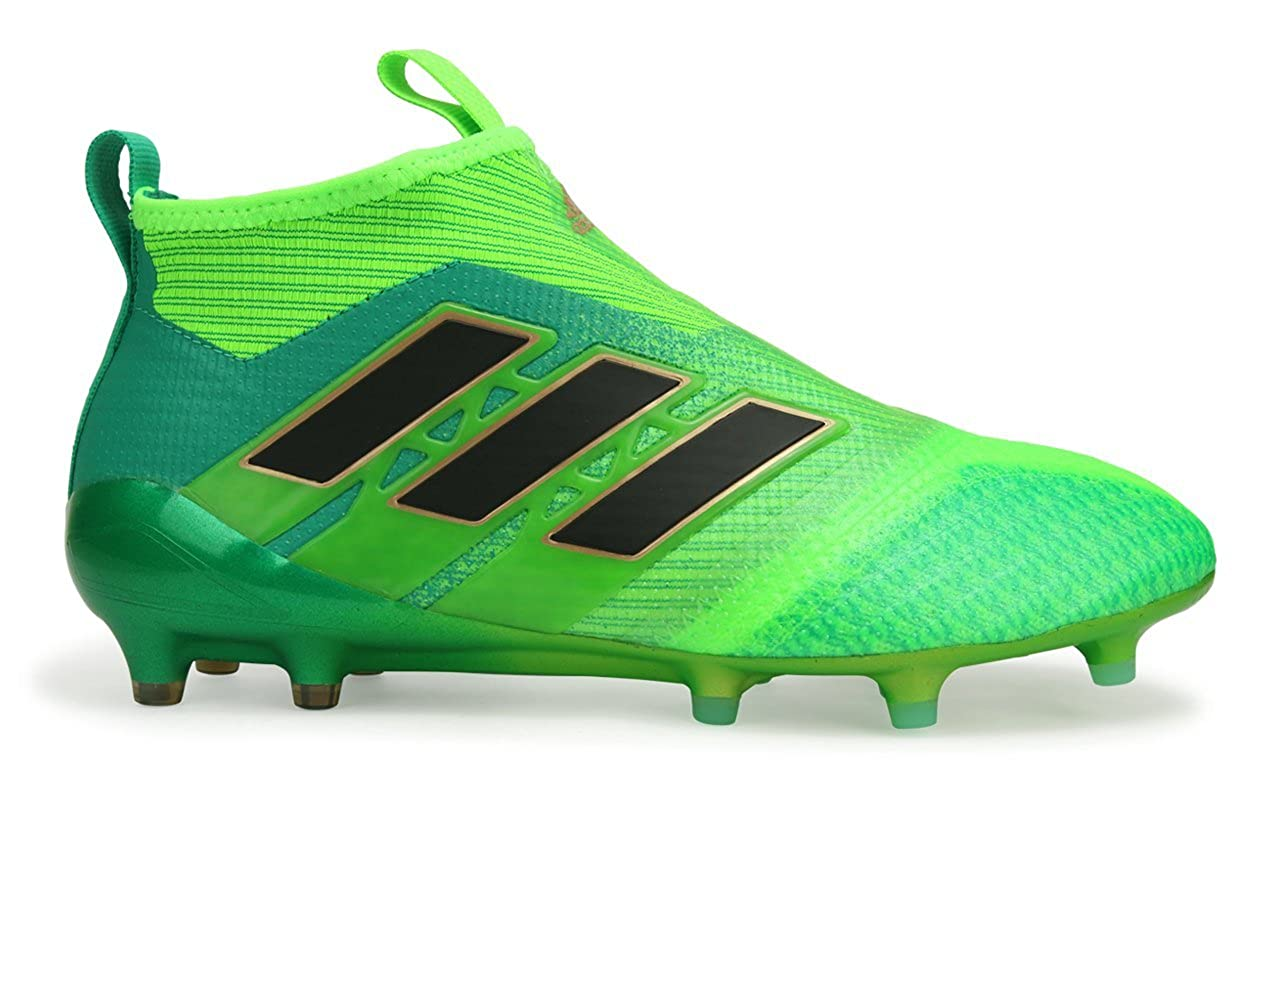 brand new d7719 2997b Amazon.com   adidas Men s Ace 17+ Purecontrol Fg Solar Green Core  Green Black Soccer Shoes   Soccer